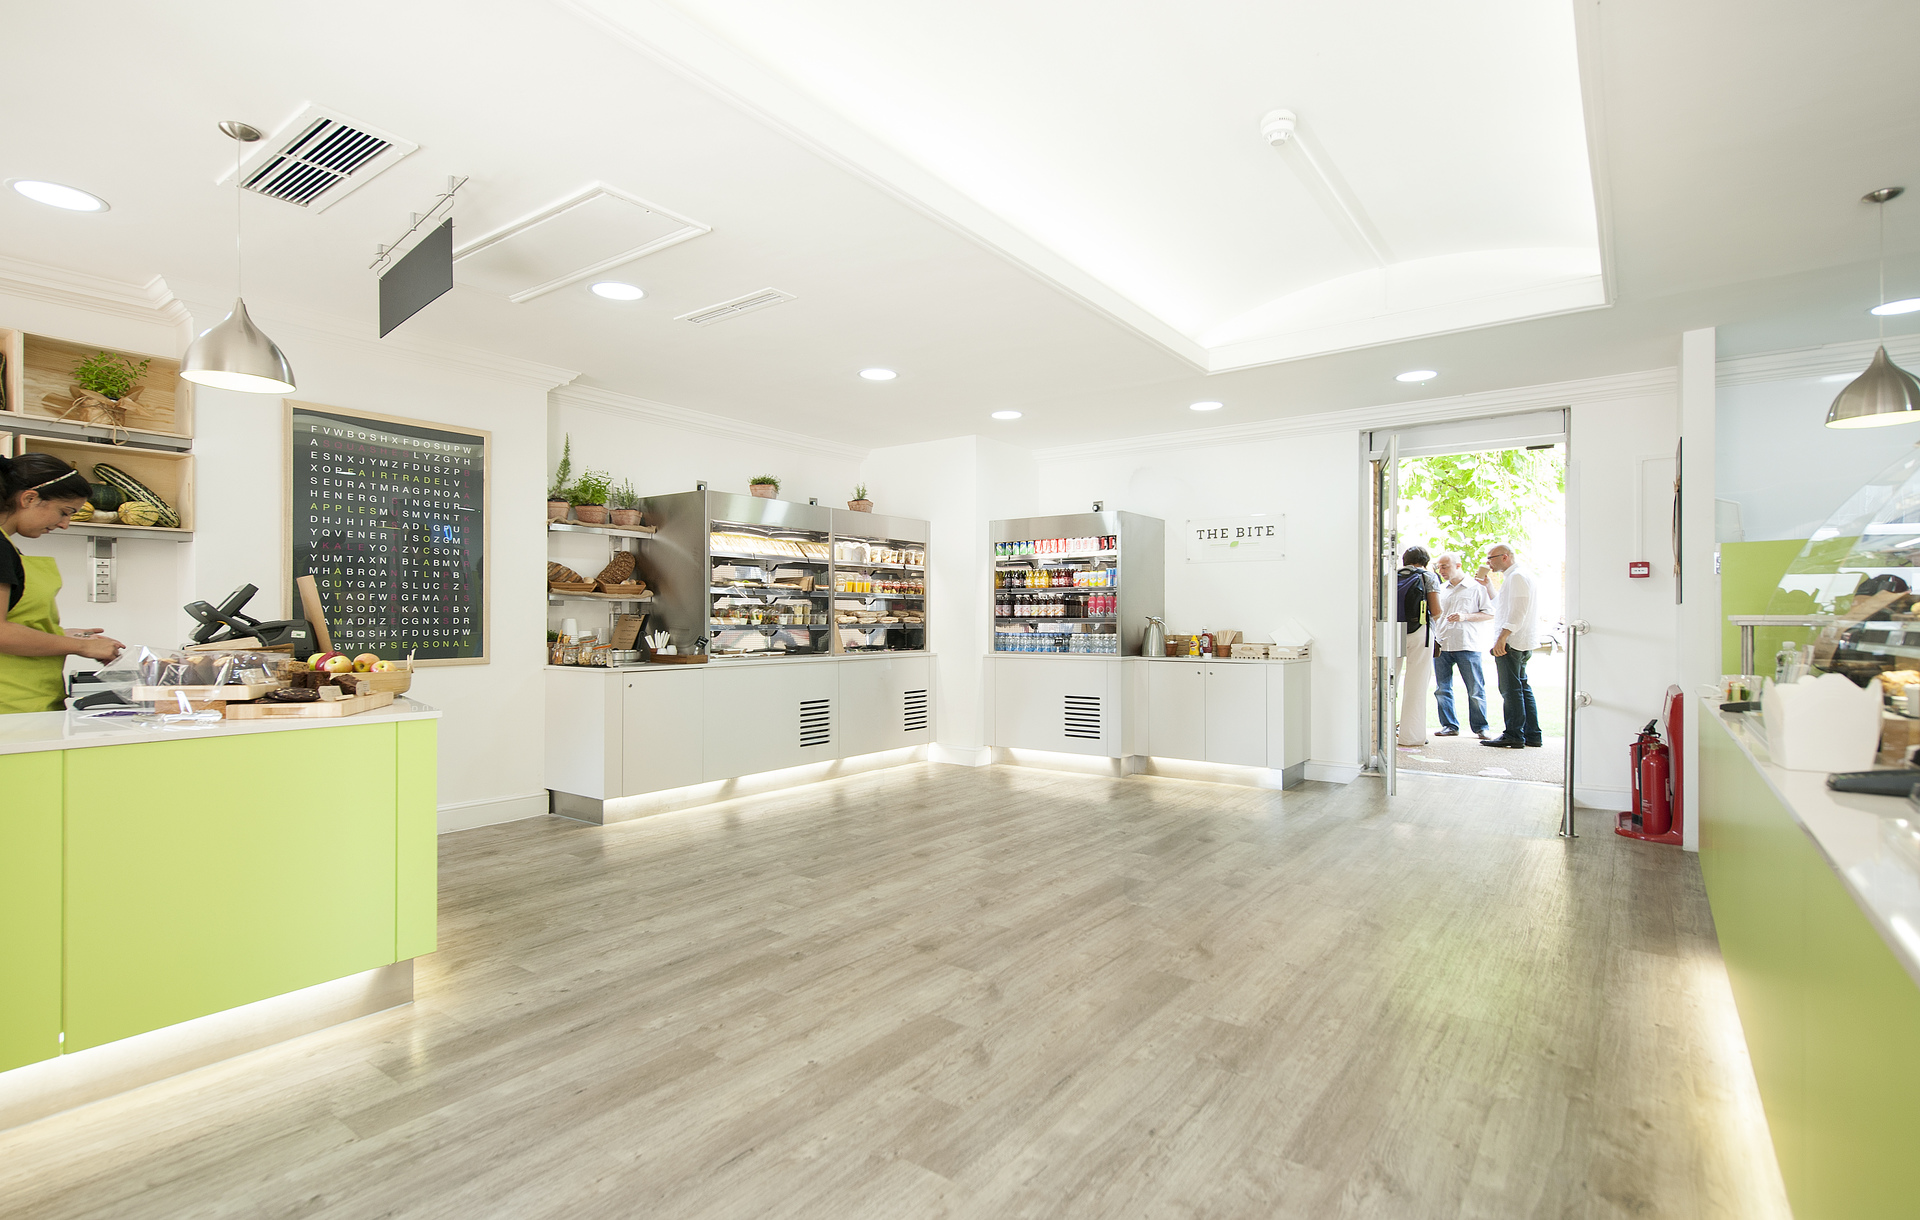 cafateria_fit_out_the_bite_london_business_school-0003.jpg